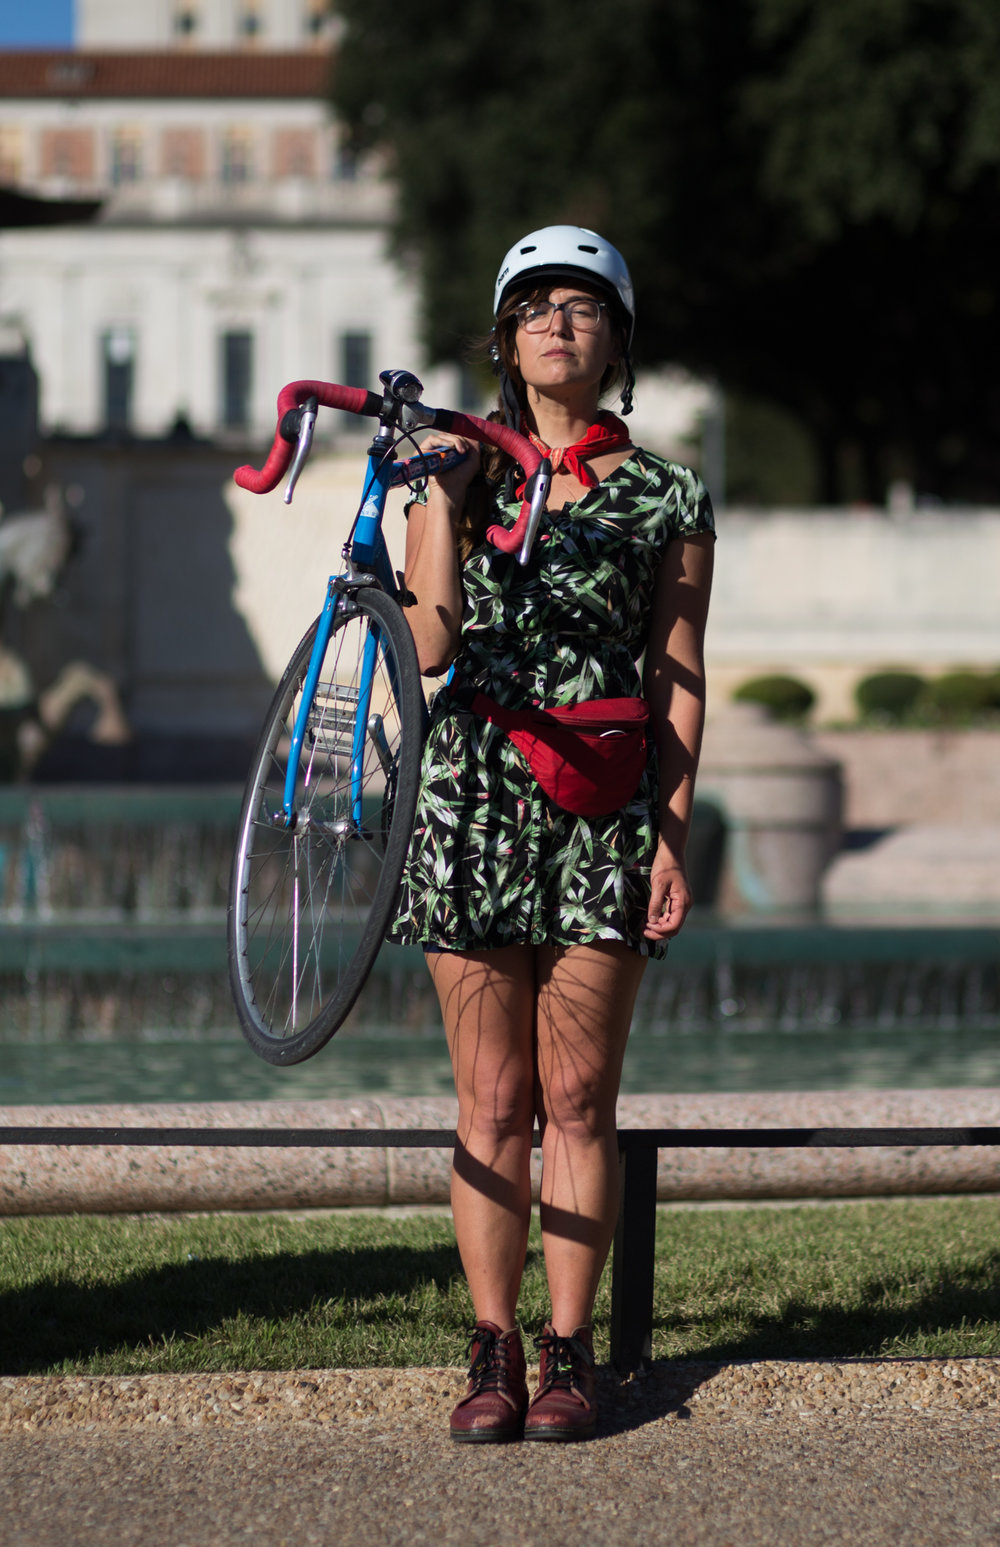 Amanda Vaughn is a graduate student at UT who has been bike commuting to campus for several years. She said her commute involves roads that are poorly maintained and that she often has to change her routes due to new construction around town. UT Austin Campus, November 16, 2016.